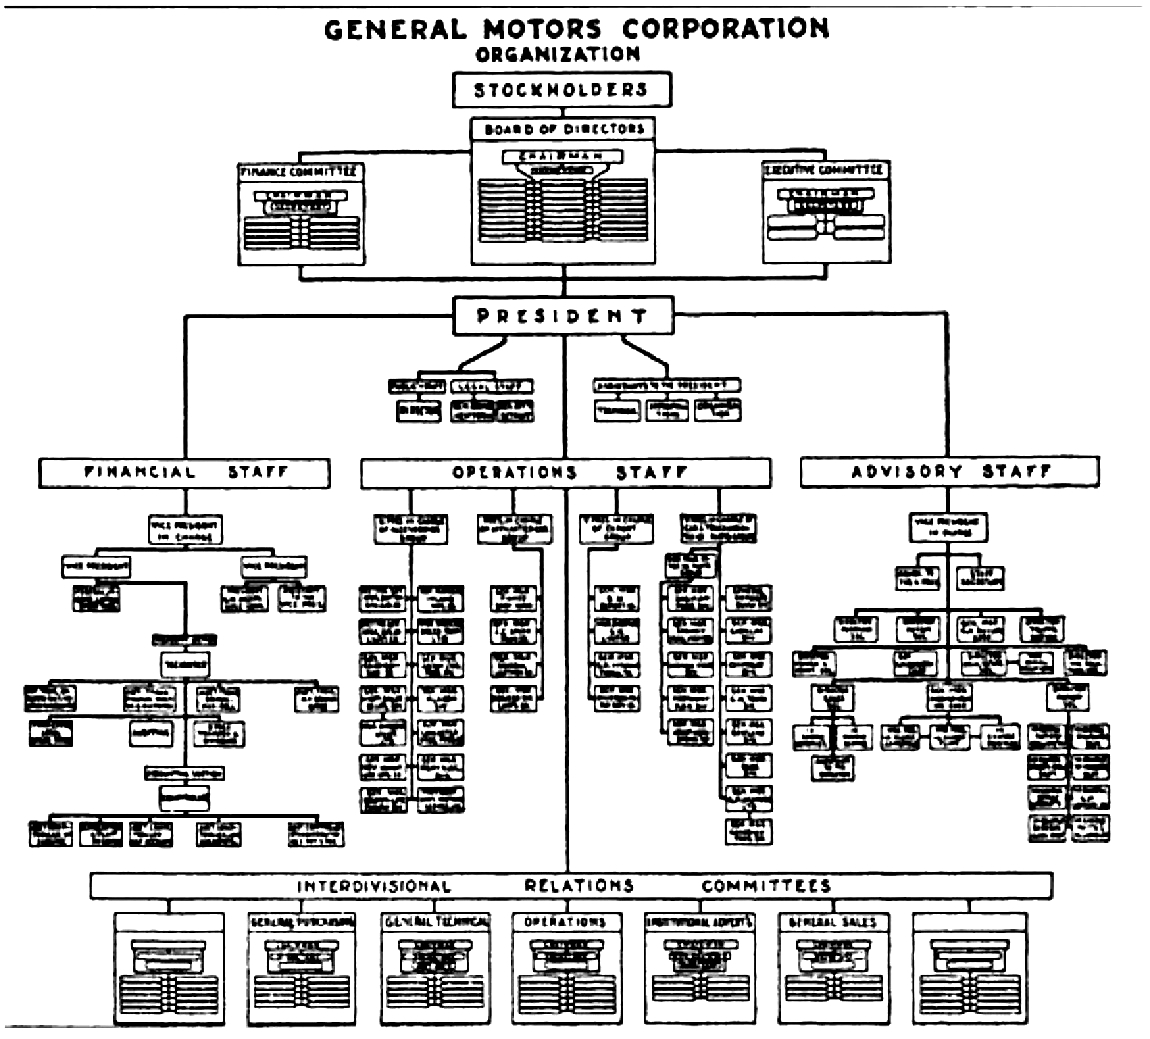 http://steveblank.files.wordpress.com/2014/03/gm-1925-org-chart.jpg